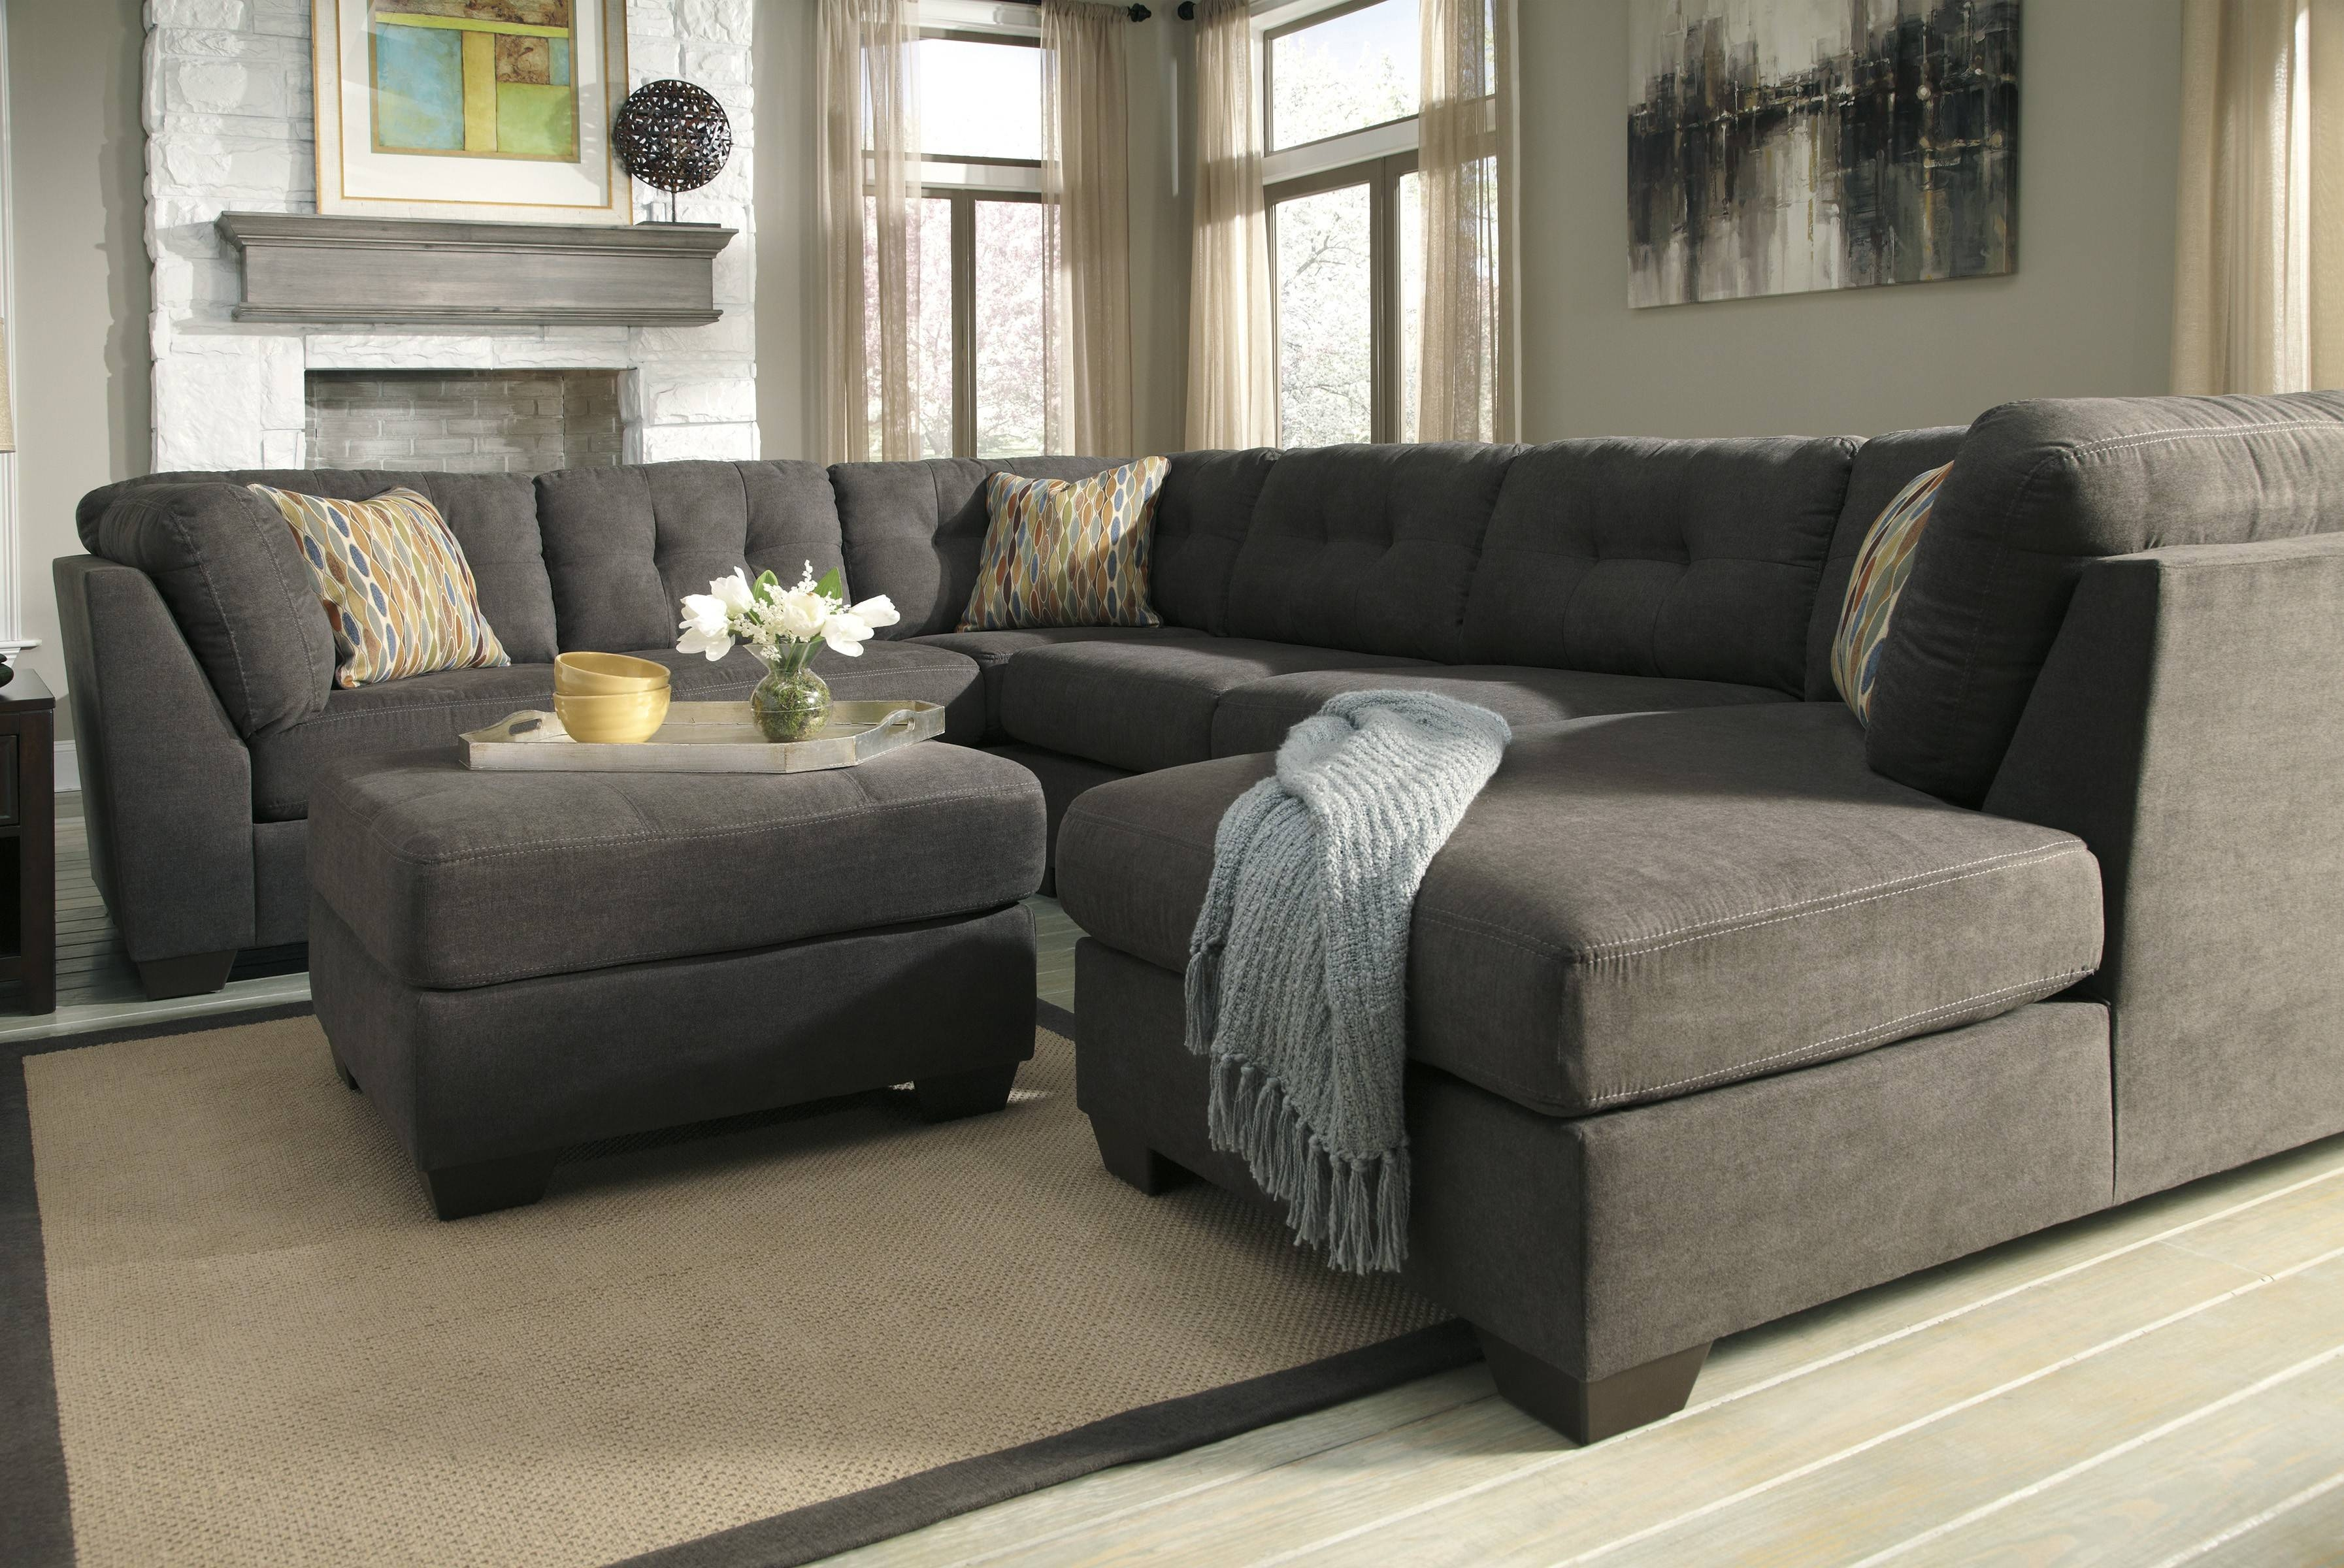 Braxton Sectional Sofa With Design Photo 26383 | Kengire regarding Braxton Sectional Sofa (Image 9 of 30)